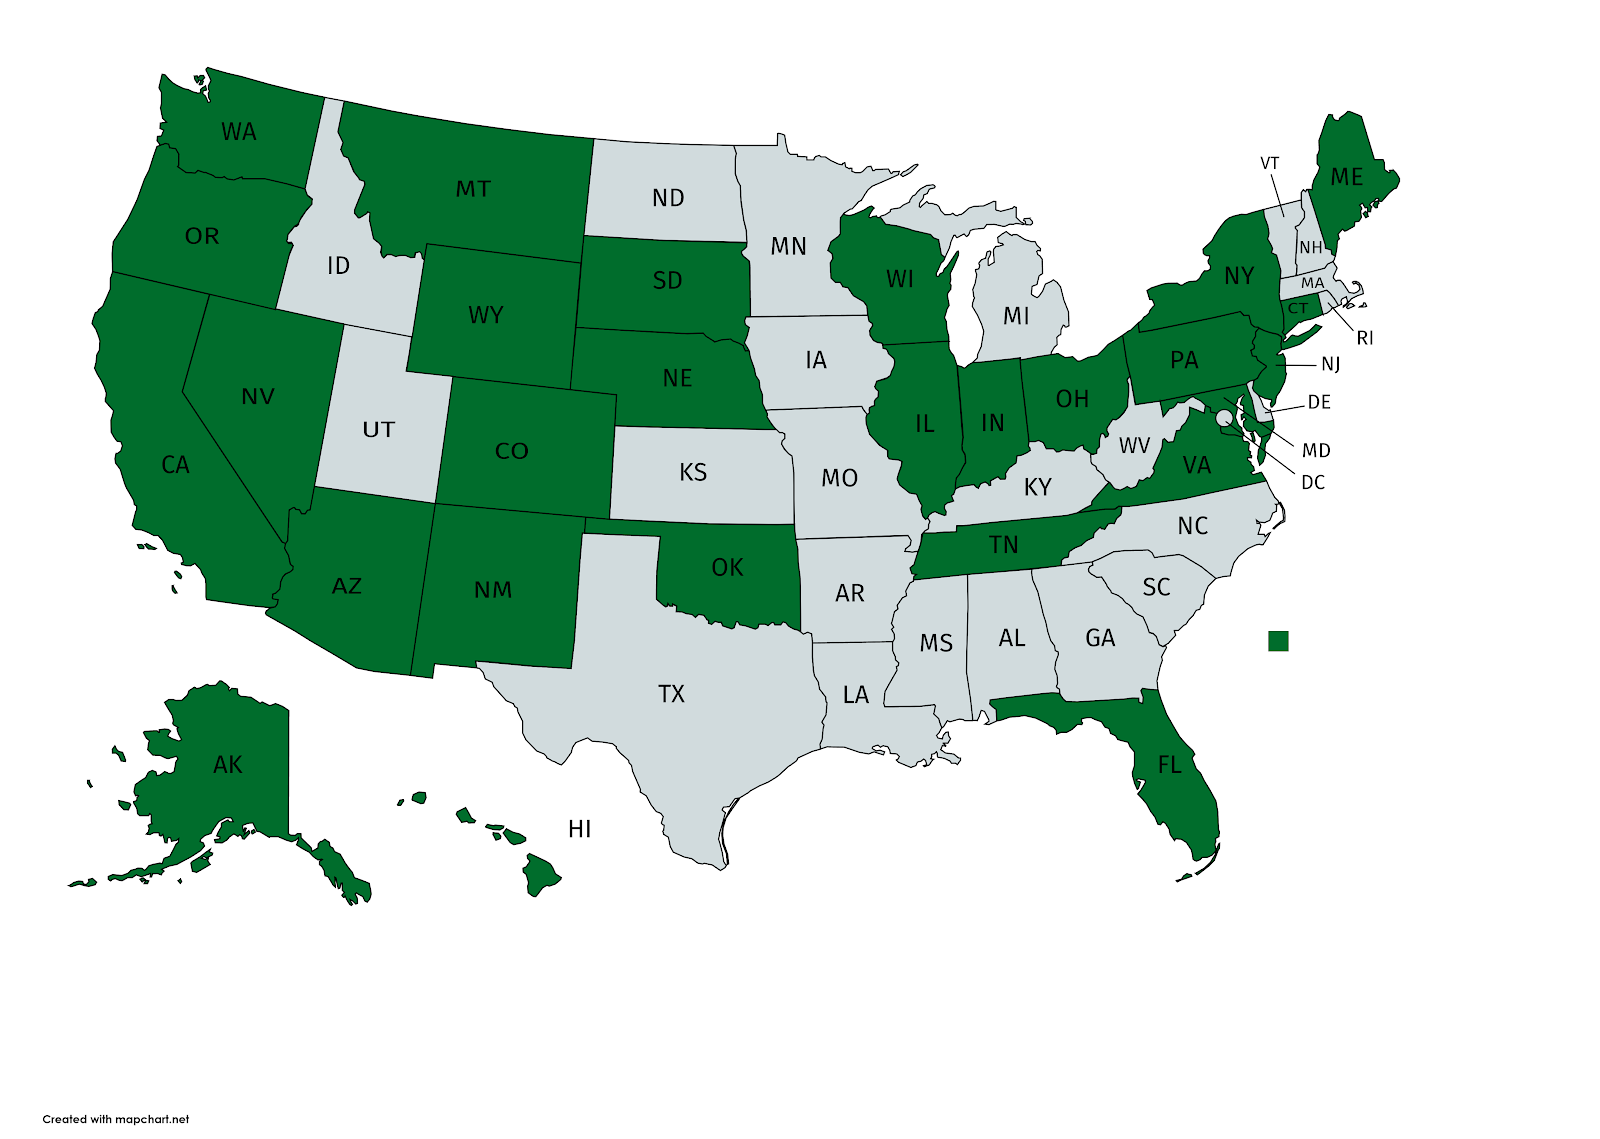 27 States make committee votes public on the website